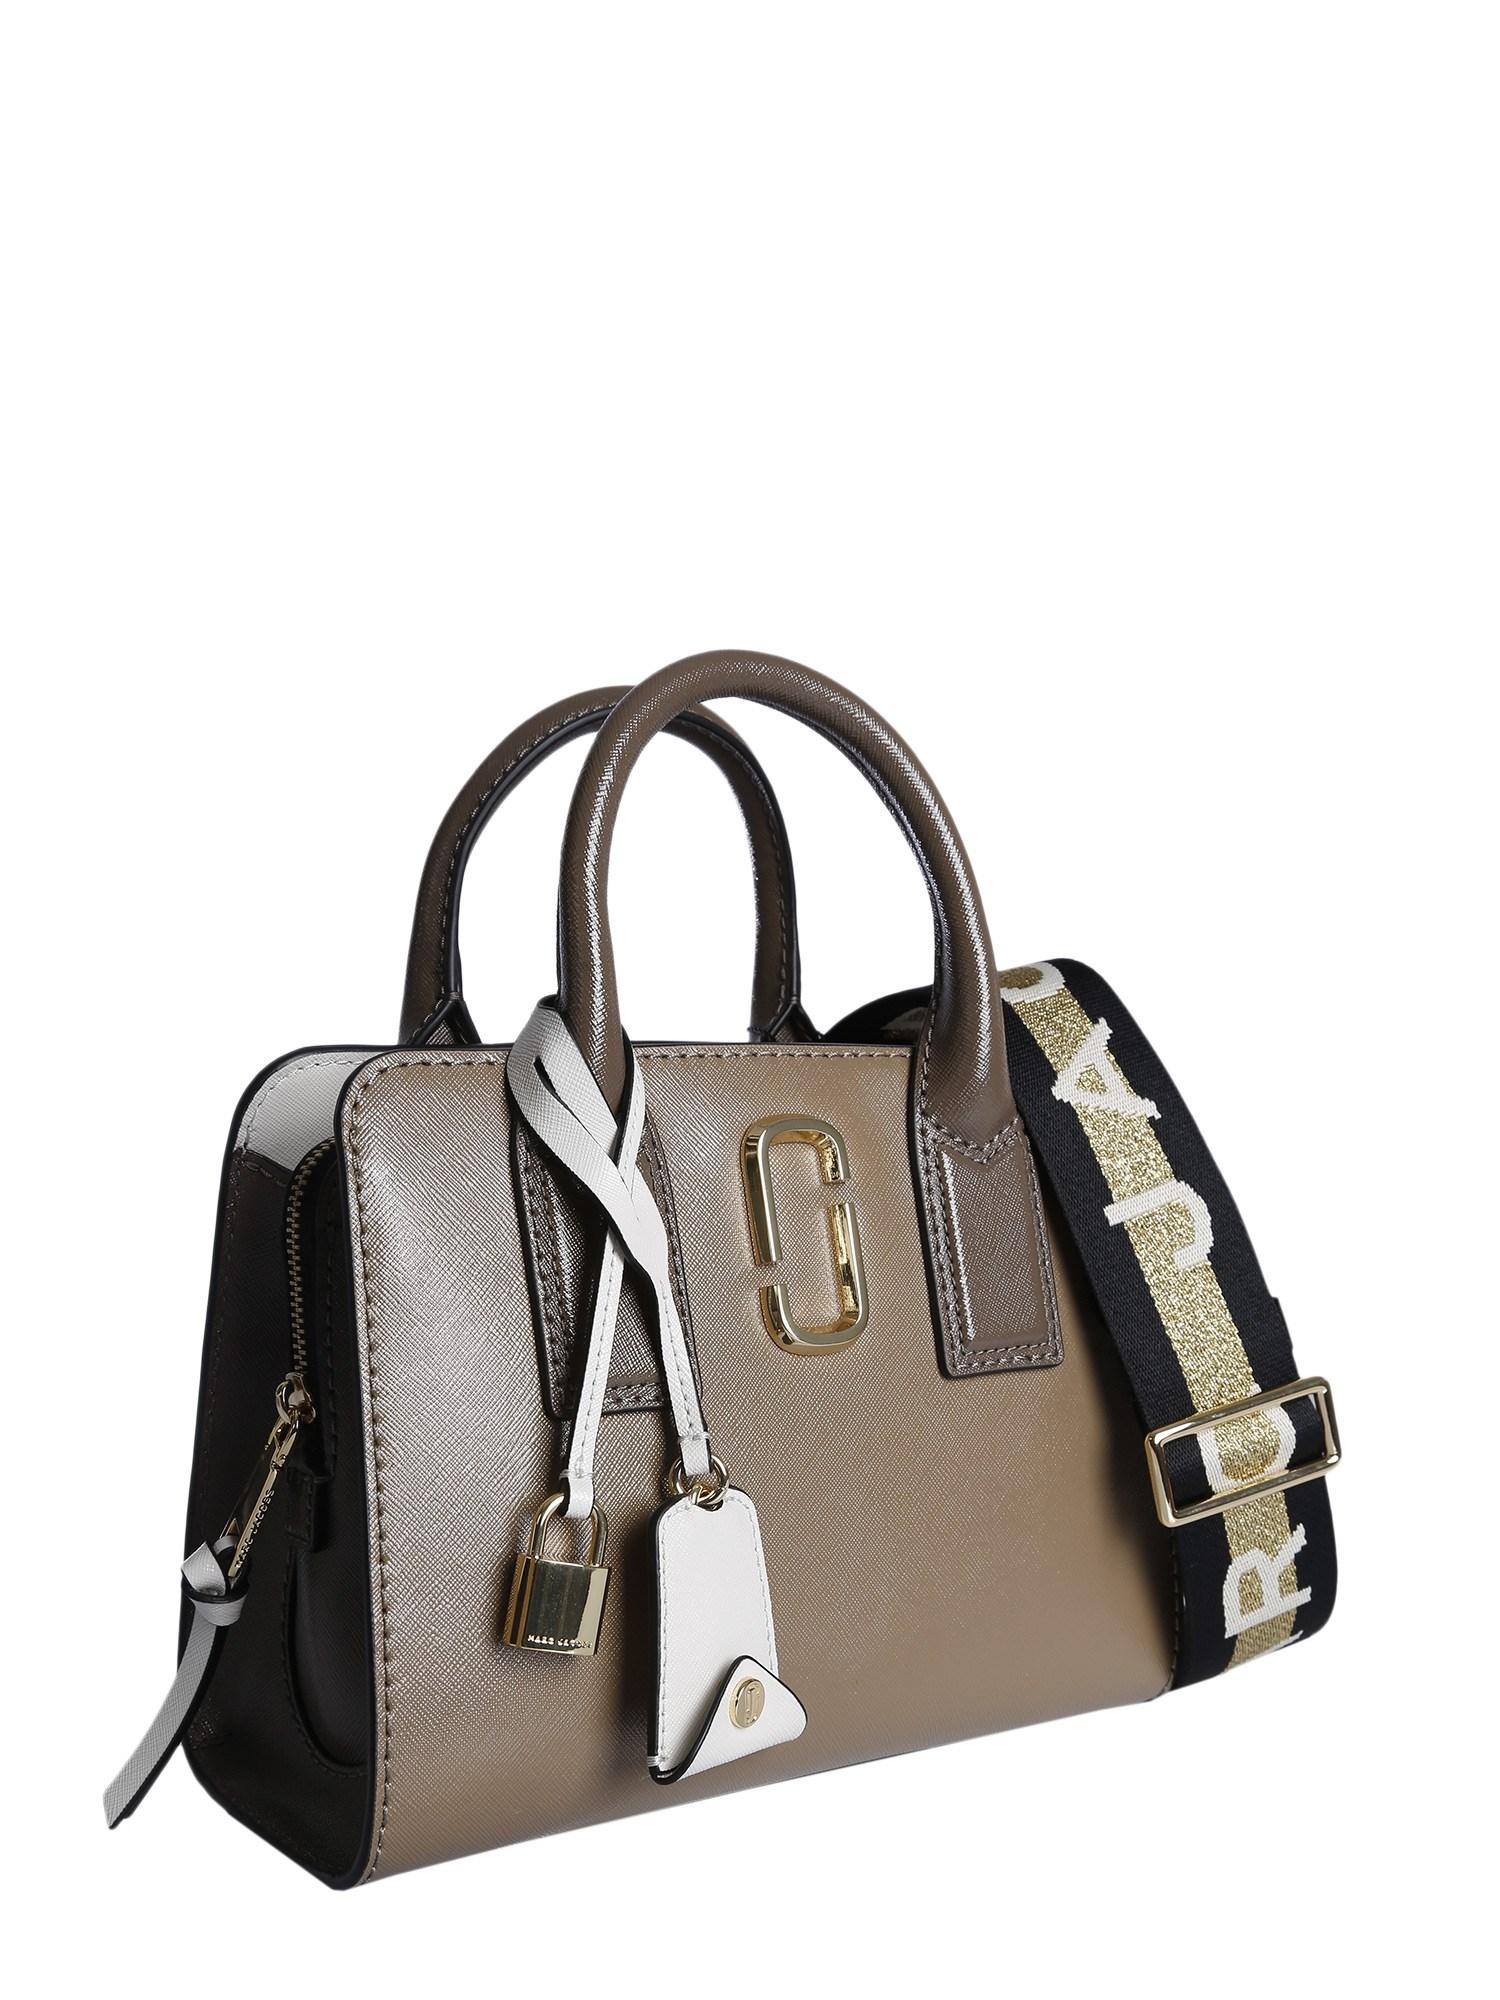 acb6cfc09e83 Marc Jacobs Brown Leather Handbag in Brown - Save 1% - Lyst